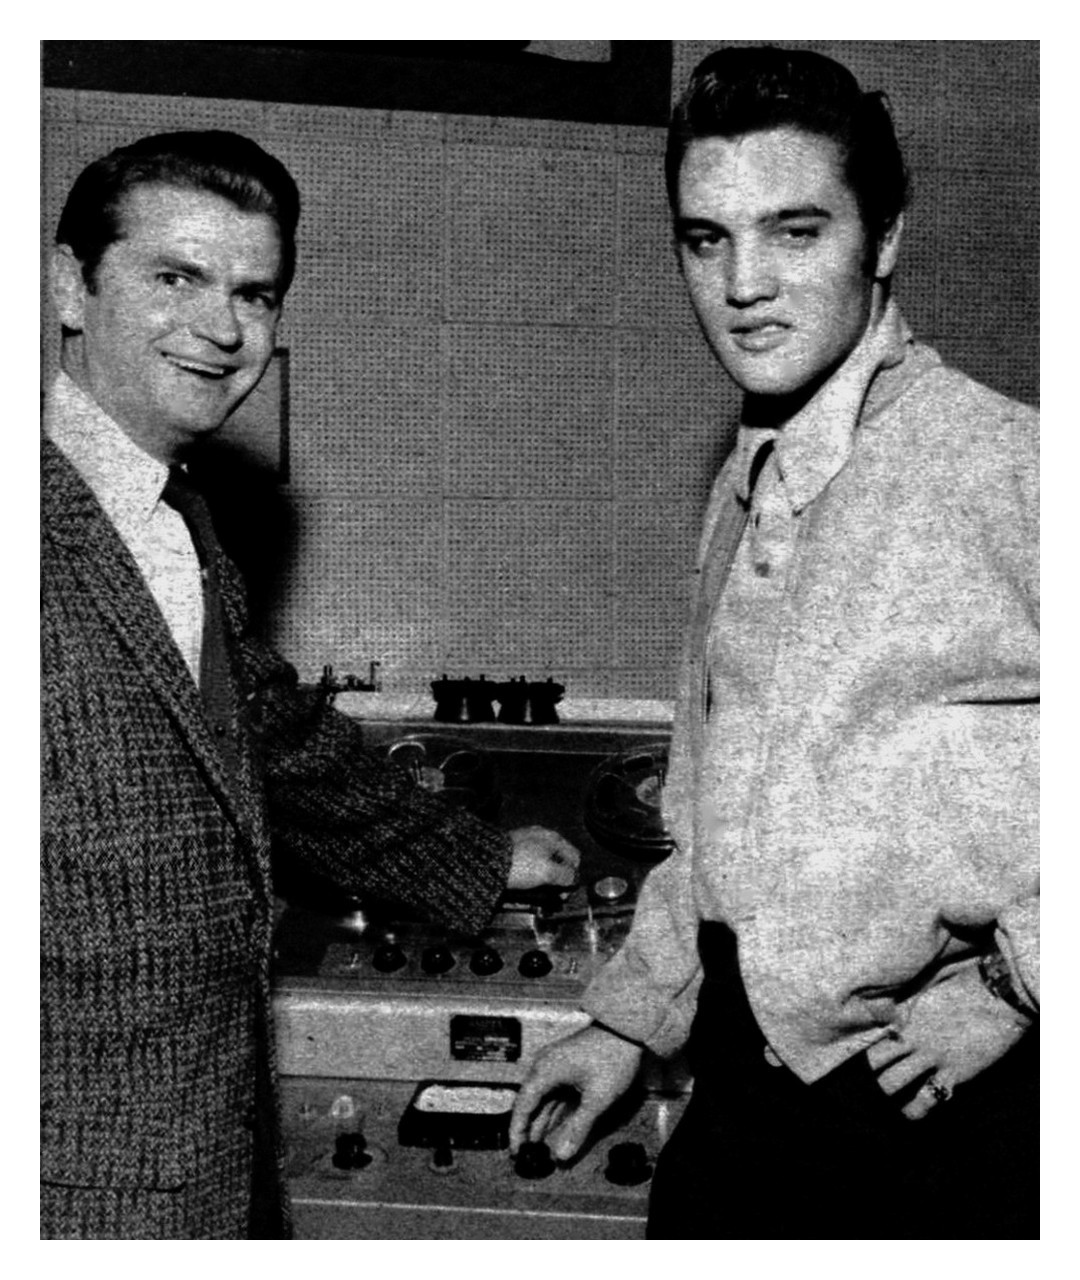 George Pierce - Sun Records - December 4, 1956 (10a)